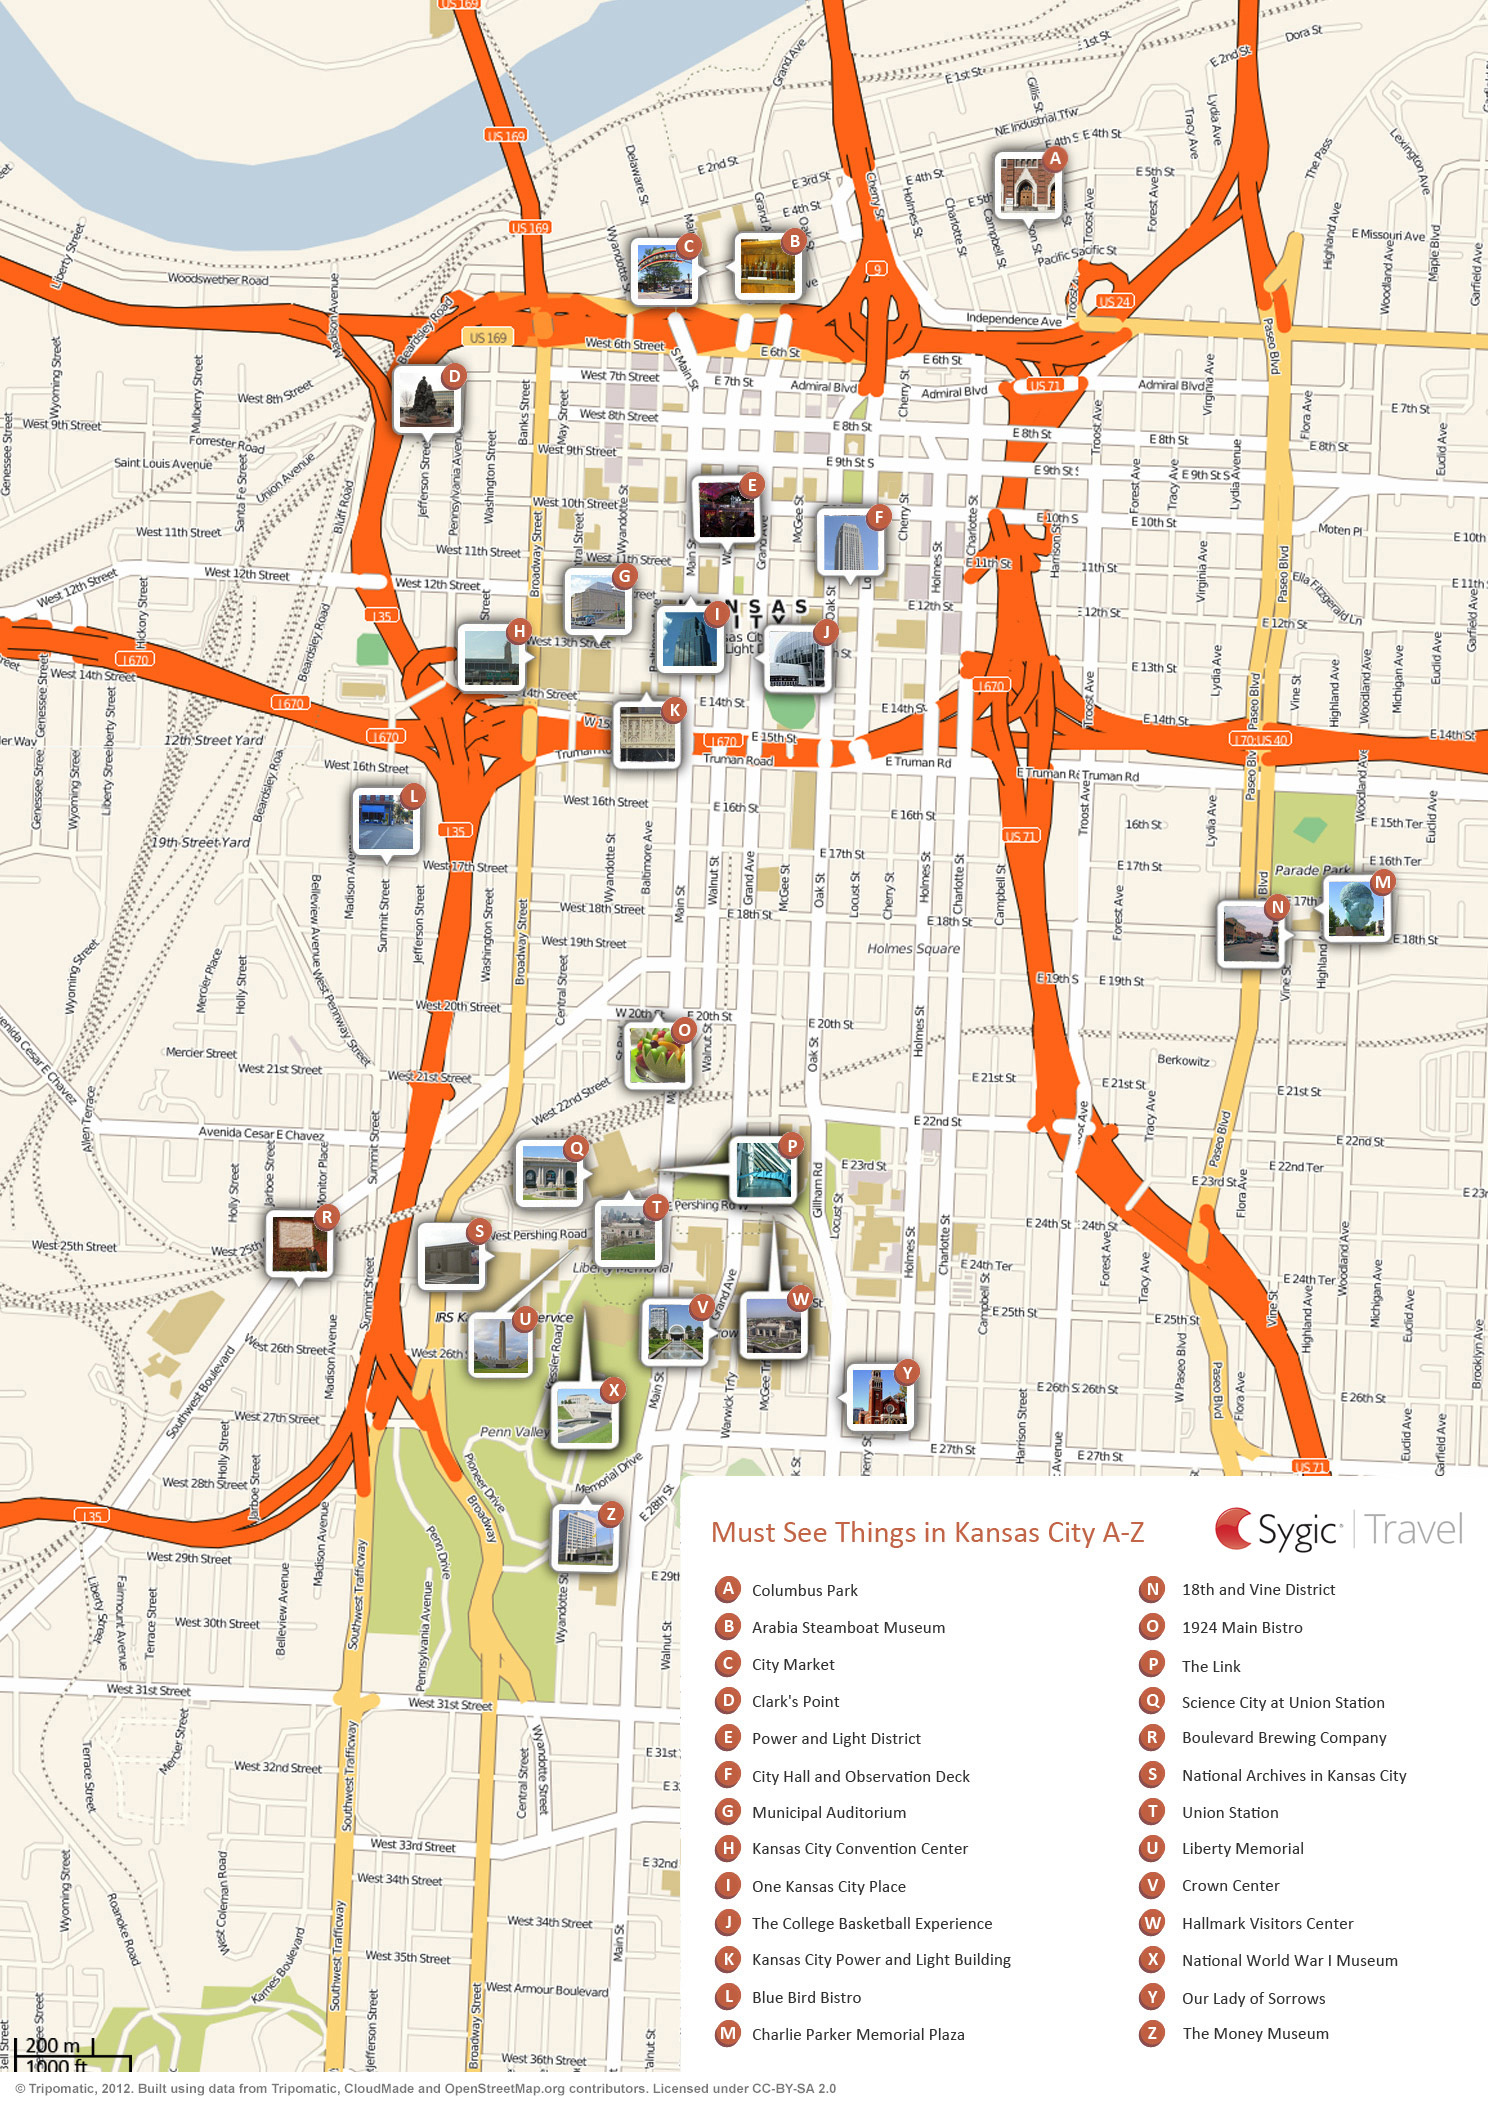 Map of kansas city attractions sygic travel for Directions to garden city kansas